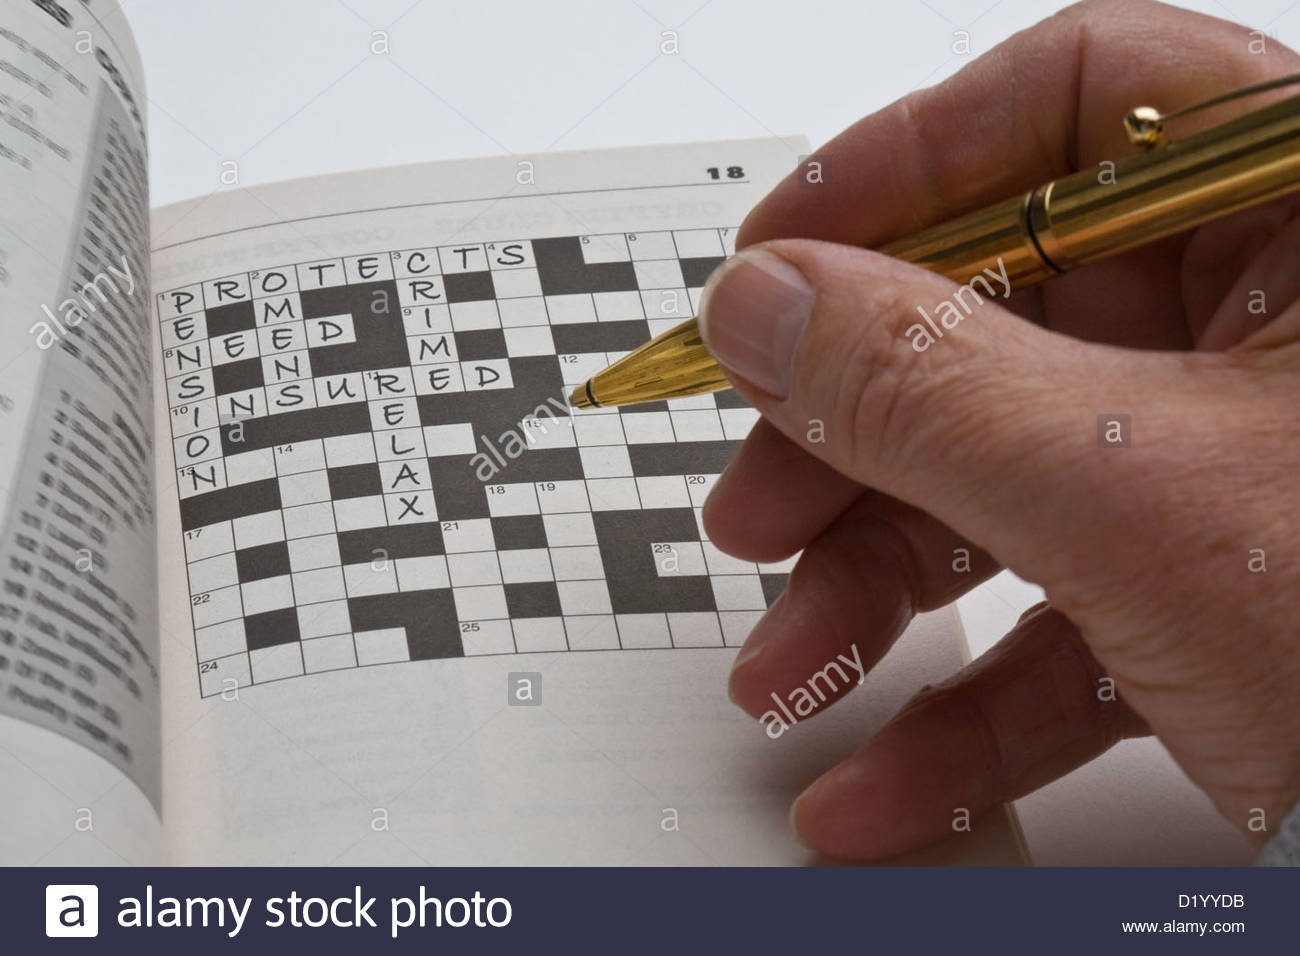 Man filling is a crossword puzzle relating to protection with insurance. - Stock Image